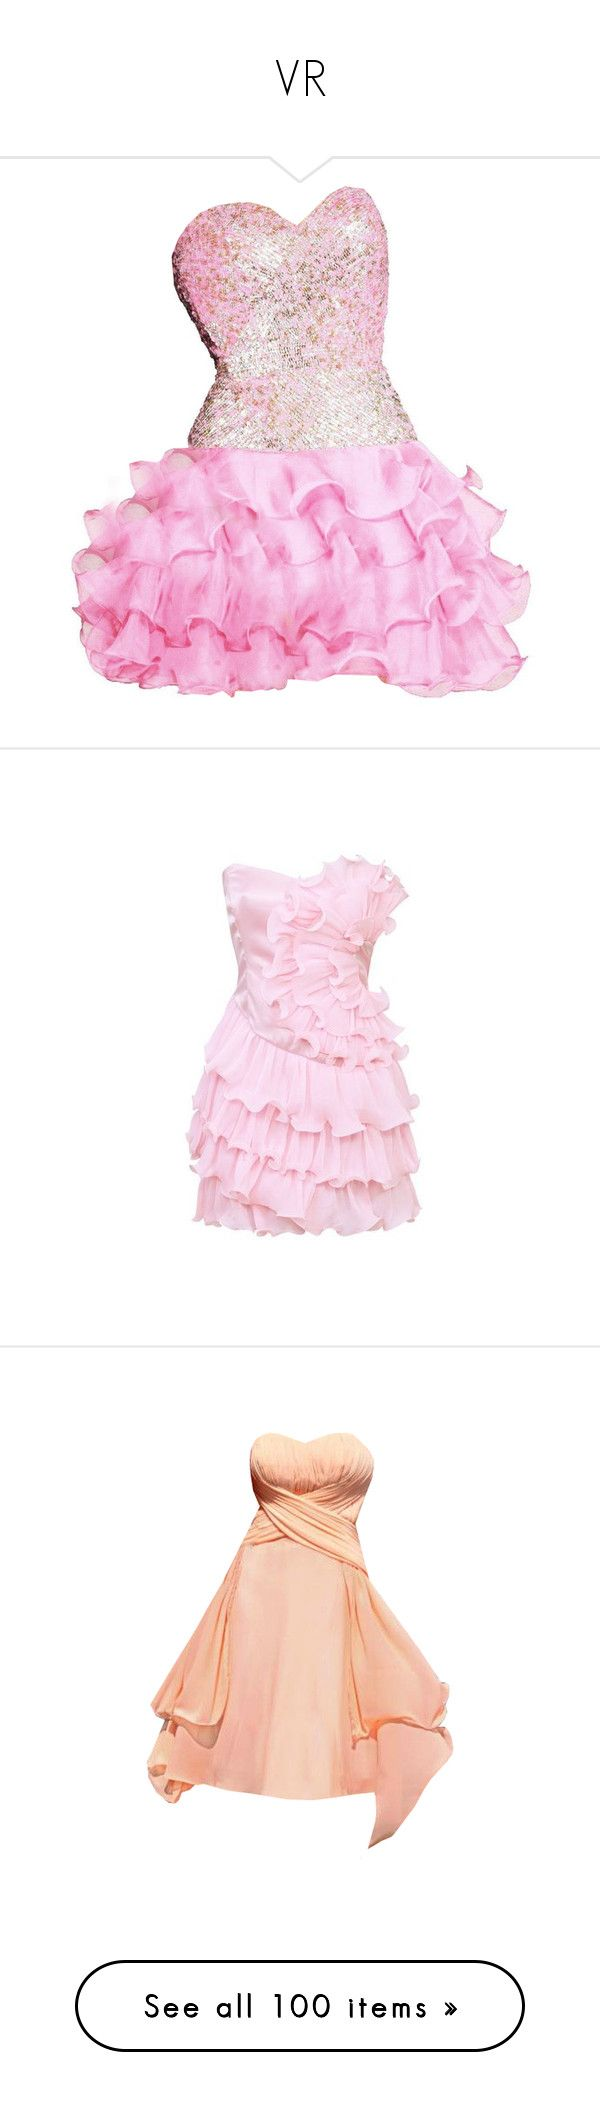 """VR"" by anabellaaaa ❤ liked on Polyvore featuring vestidos, dresses, short dresses, pink, short cocktail party dresses, pink mini dress, going out dresses, pink party dresses, tiered cocktail dress and red dress"